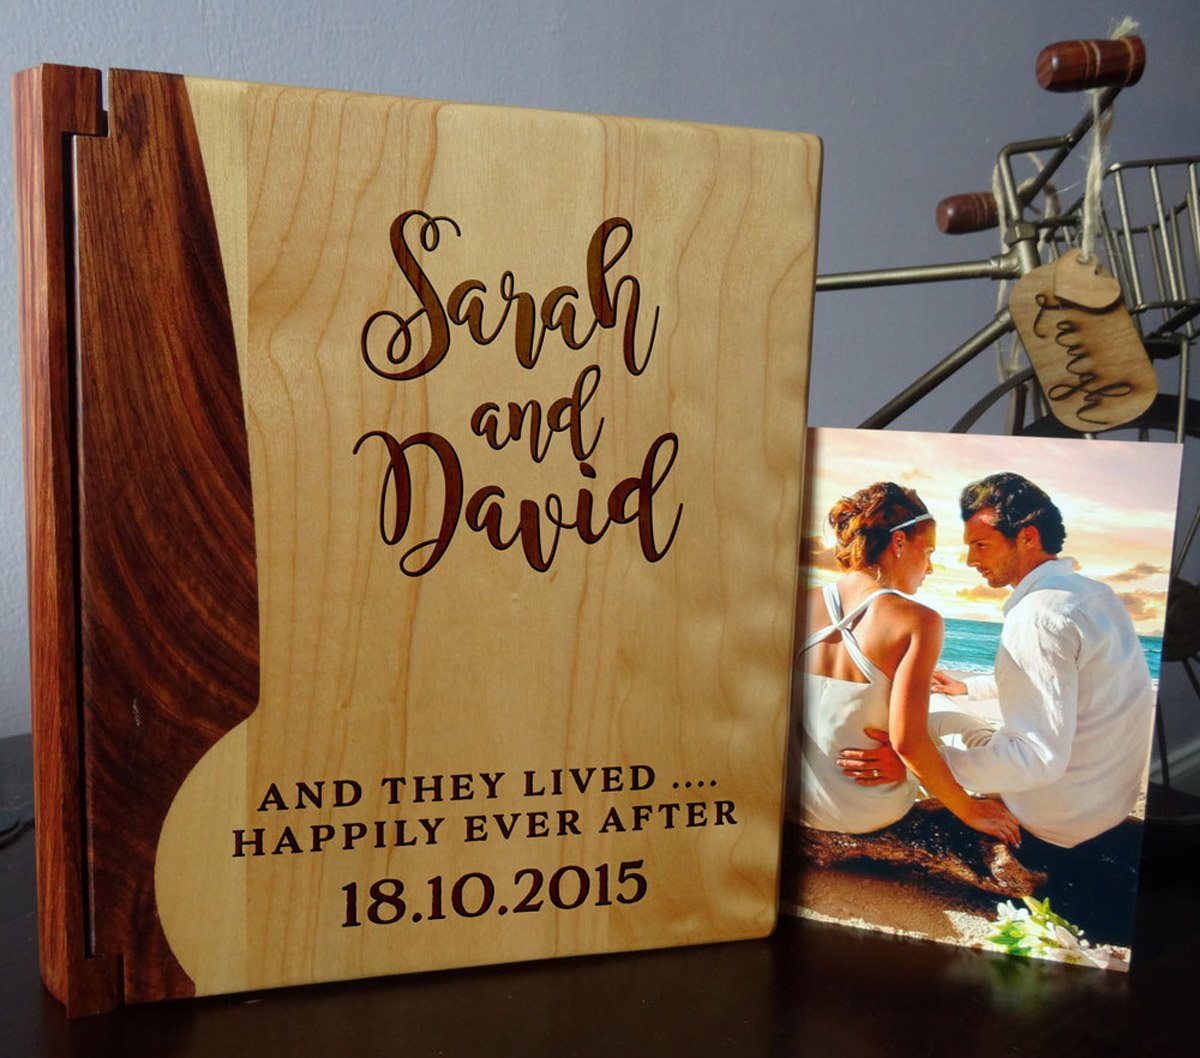 Personalized Wood Cover Photo Album, Custom Engraved Wedding Album, Style 102 (Maple & Rosewood Cover)